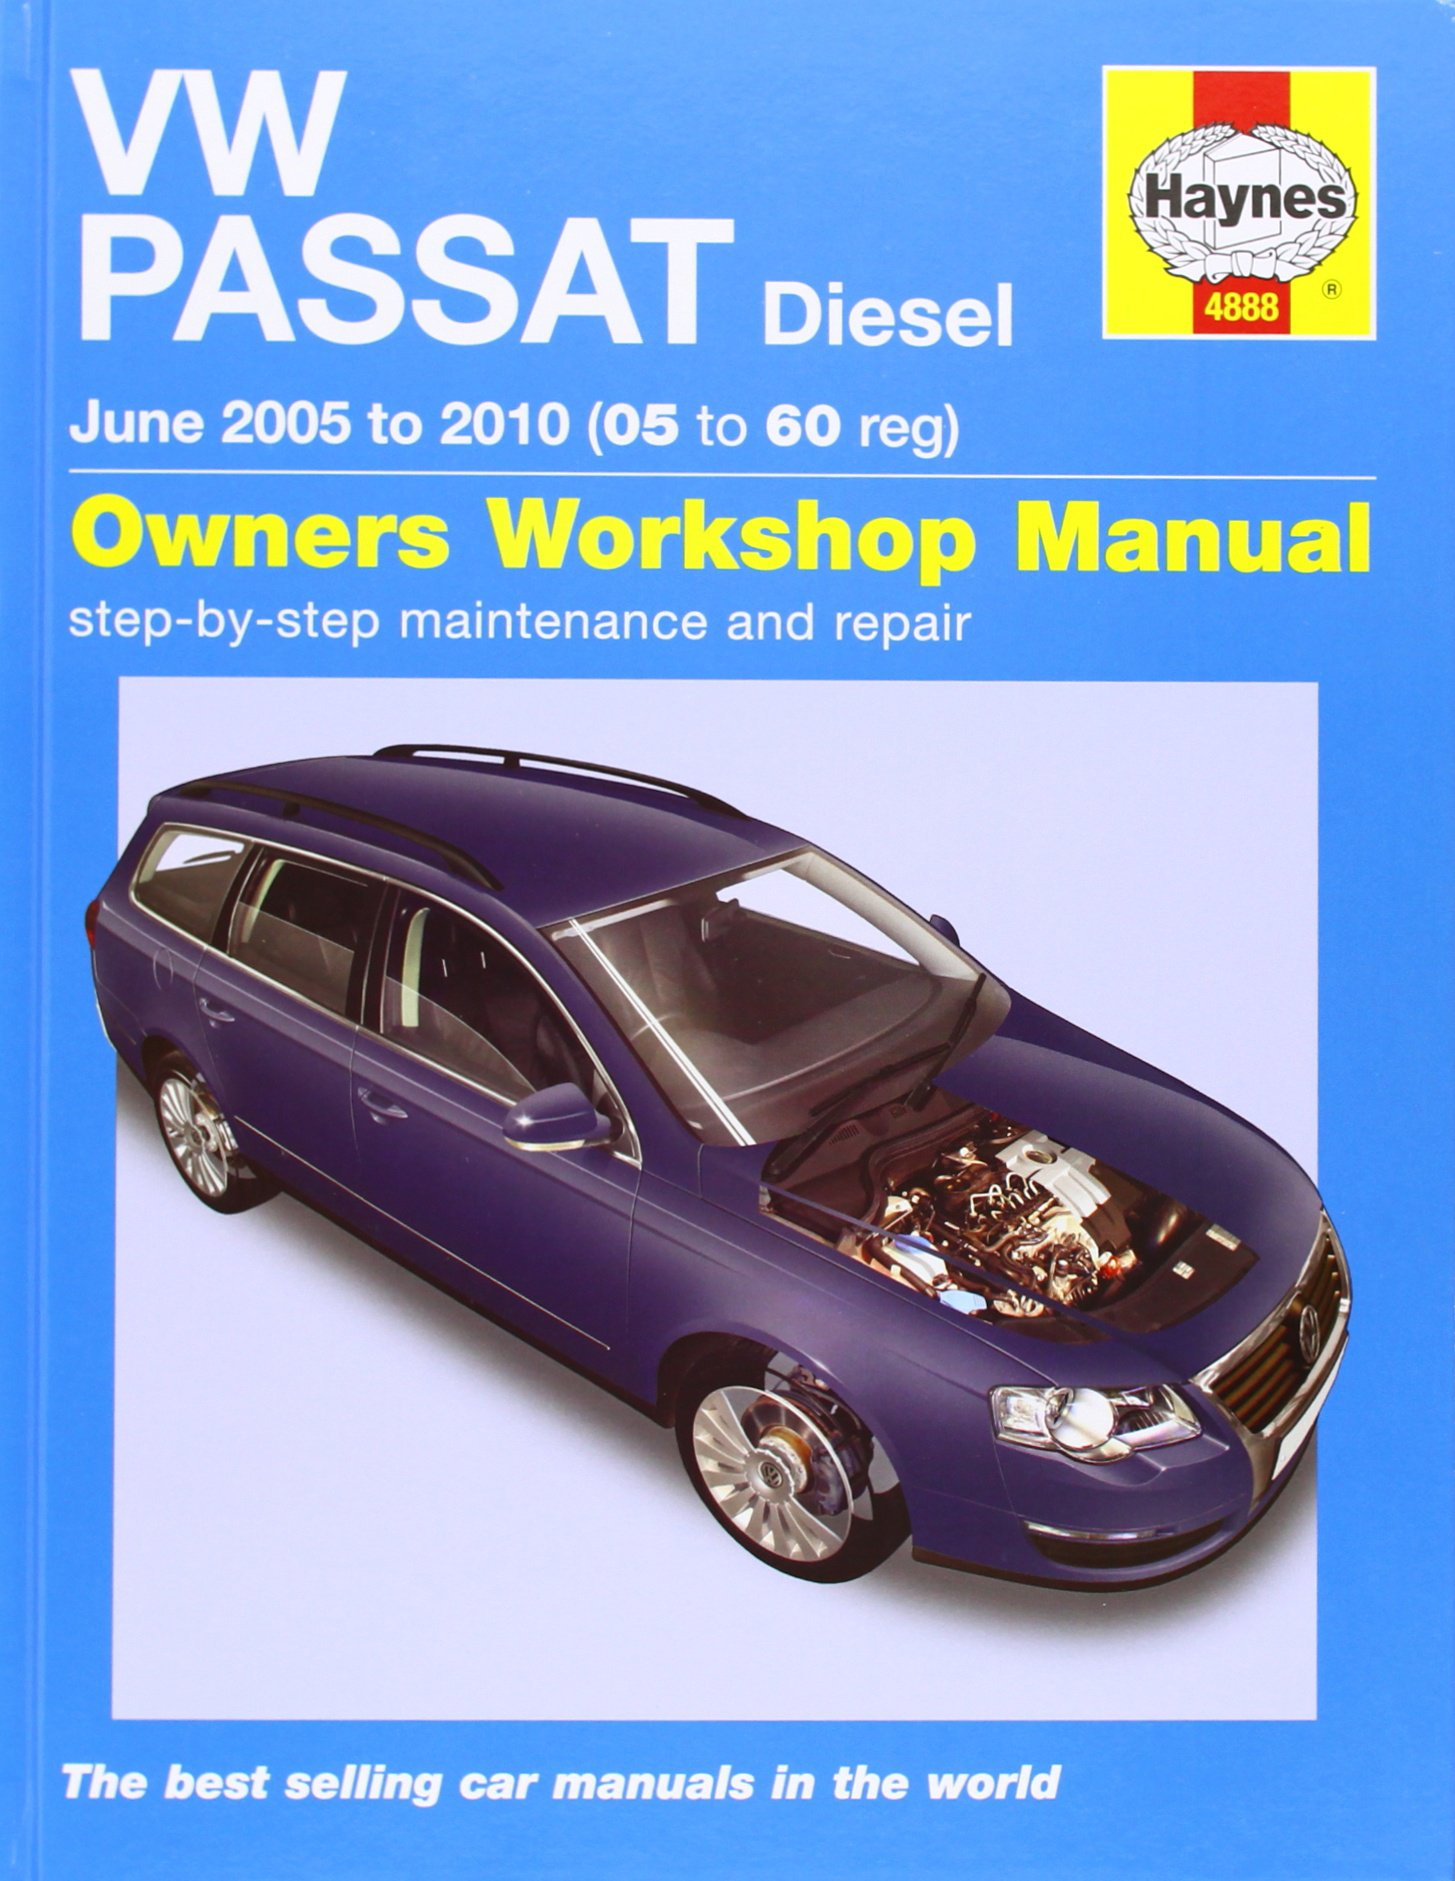 VW Passat Diesel Service and Repair Manual: 2005 to 2010 (Service & repair  manuals): Amazon.co.uk: Martynn Randall: 9781844258888: Books